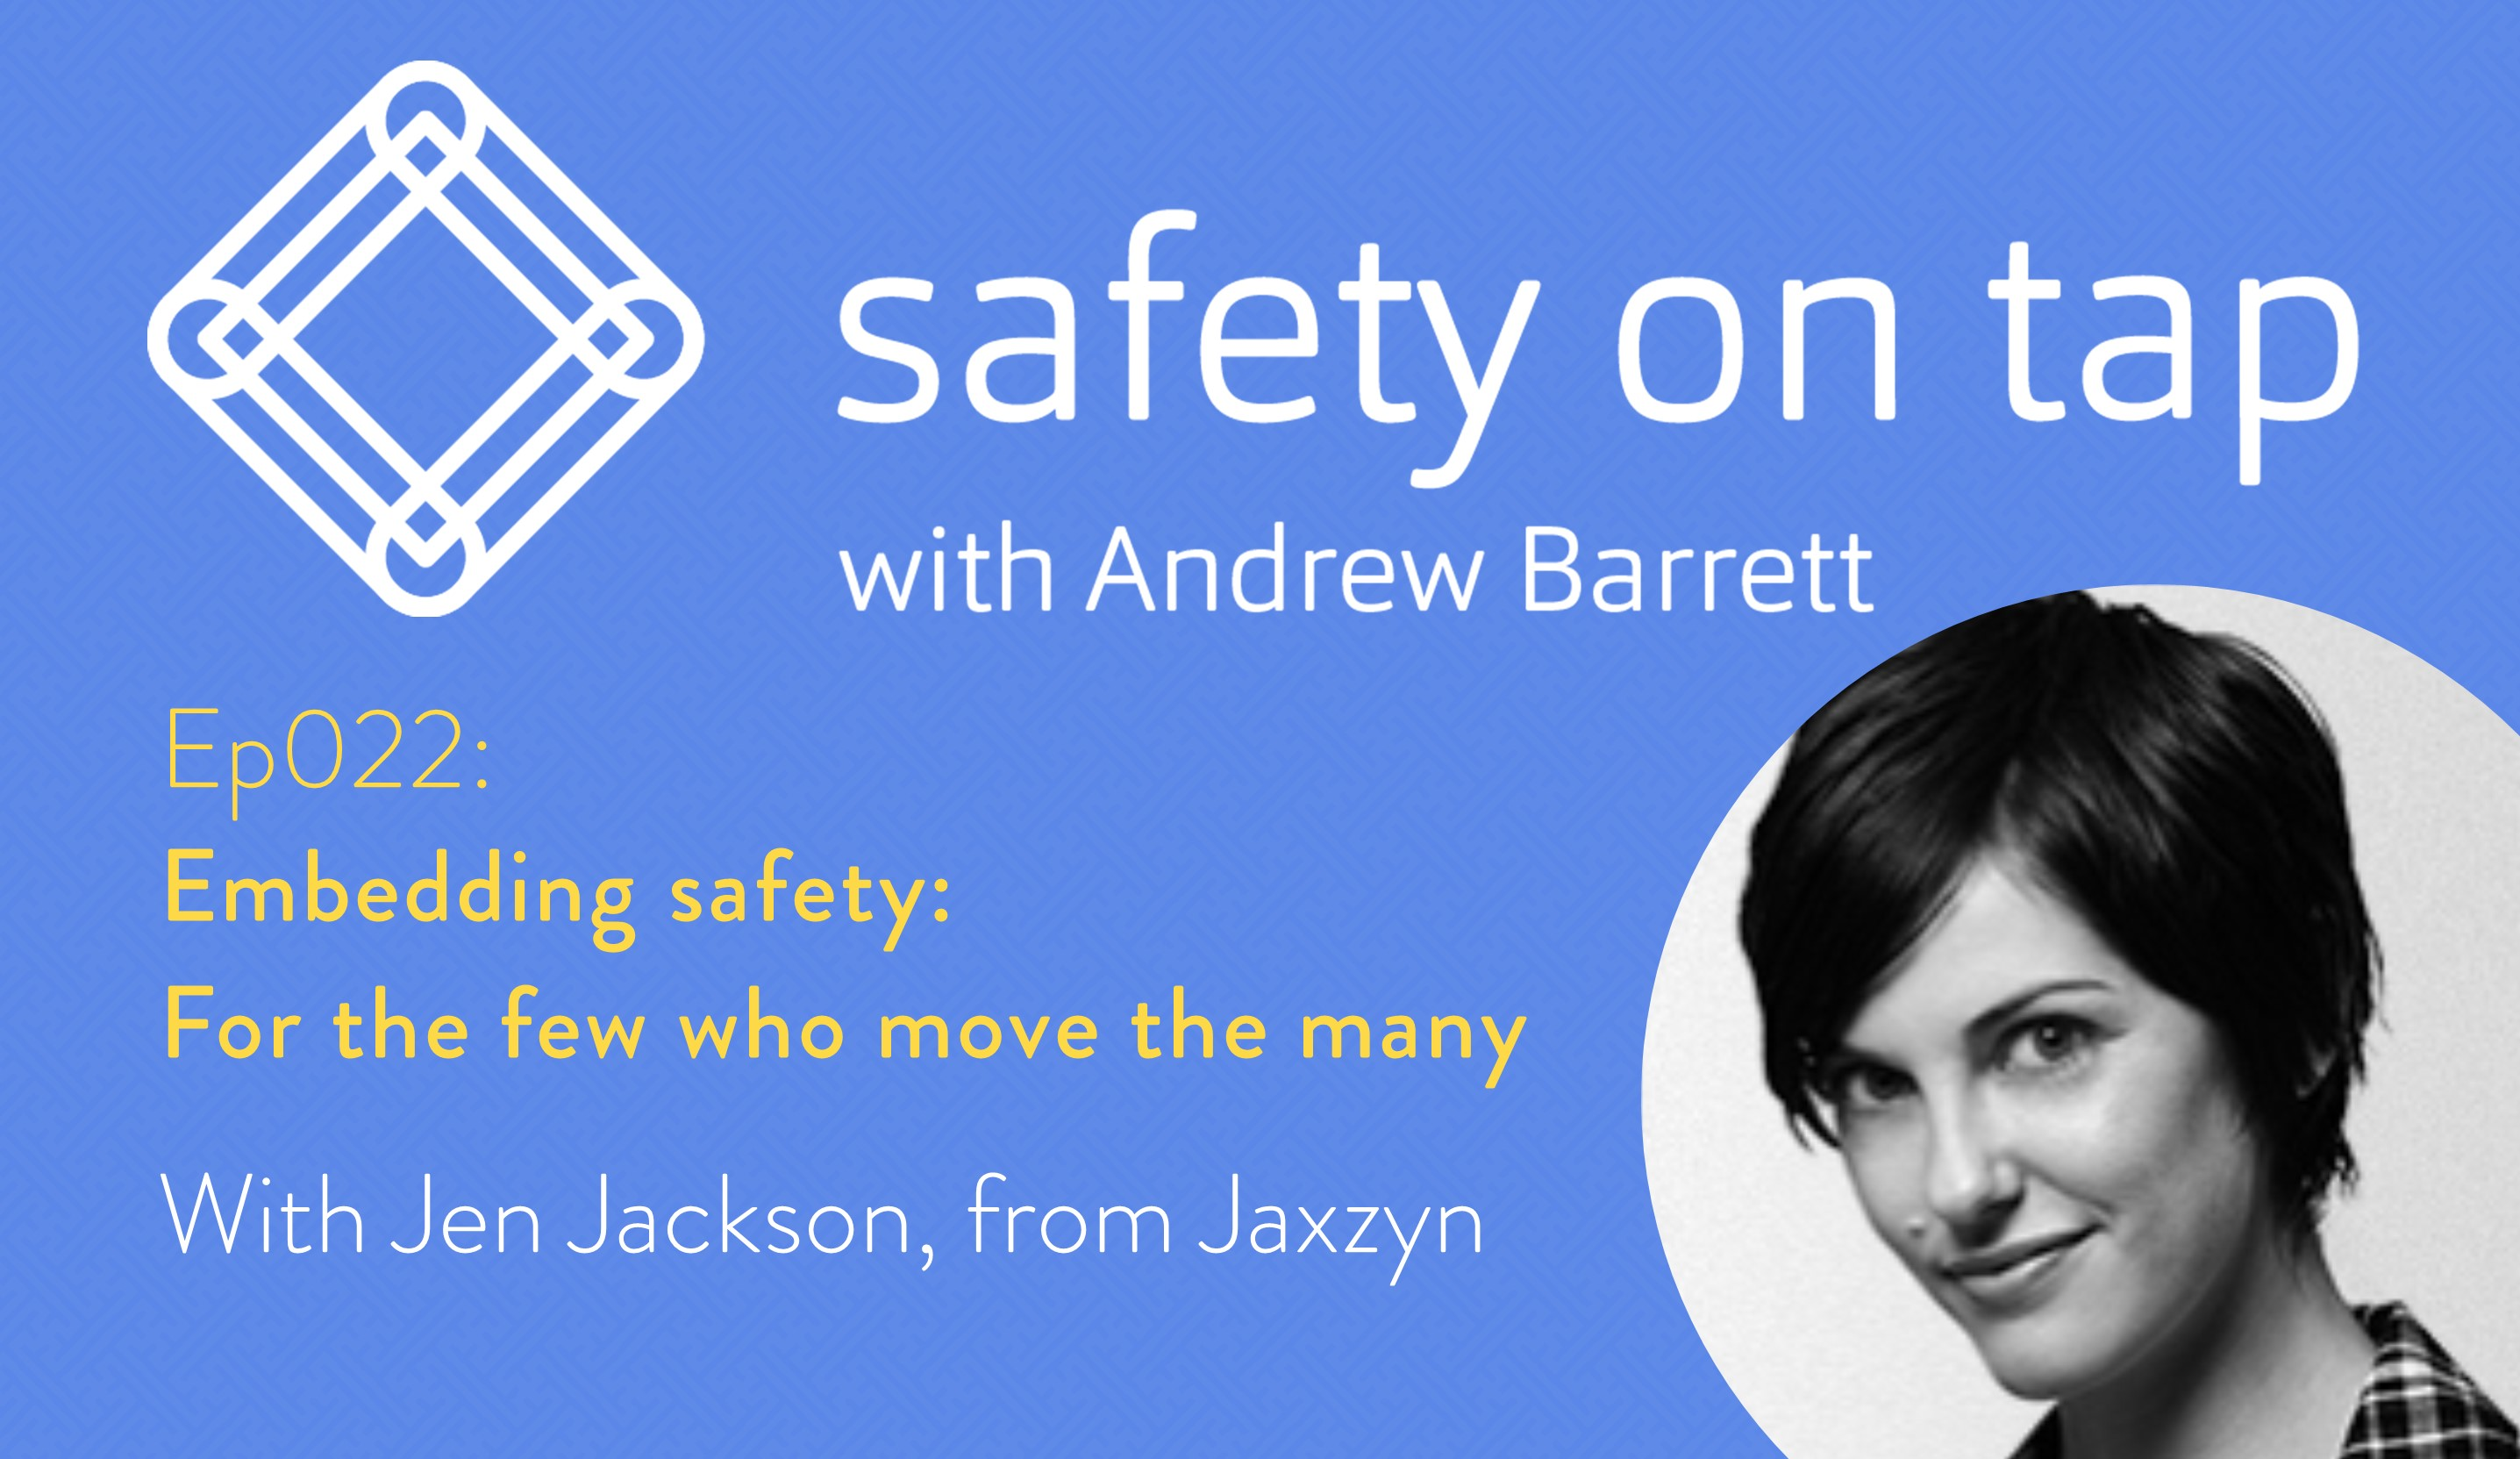 Ep022: Embedding safety: For the few who move the many